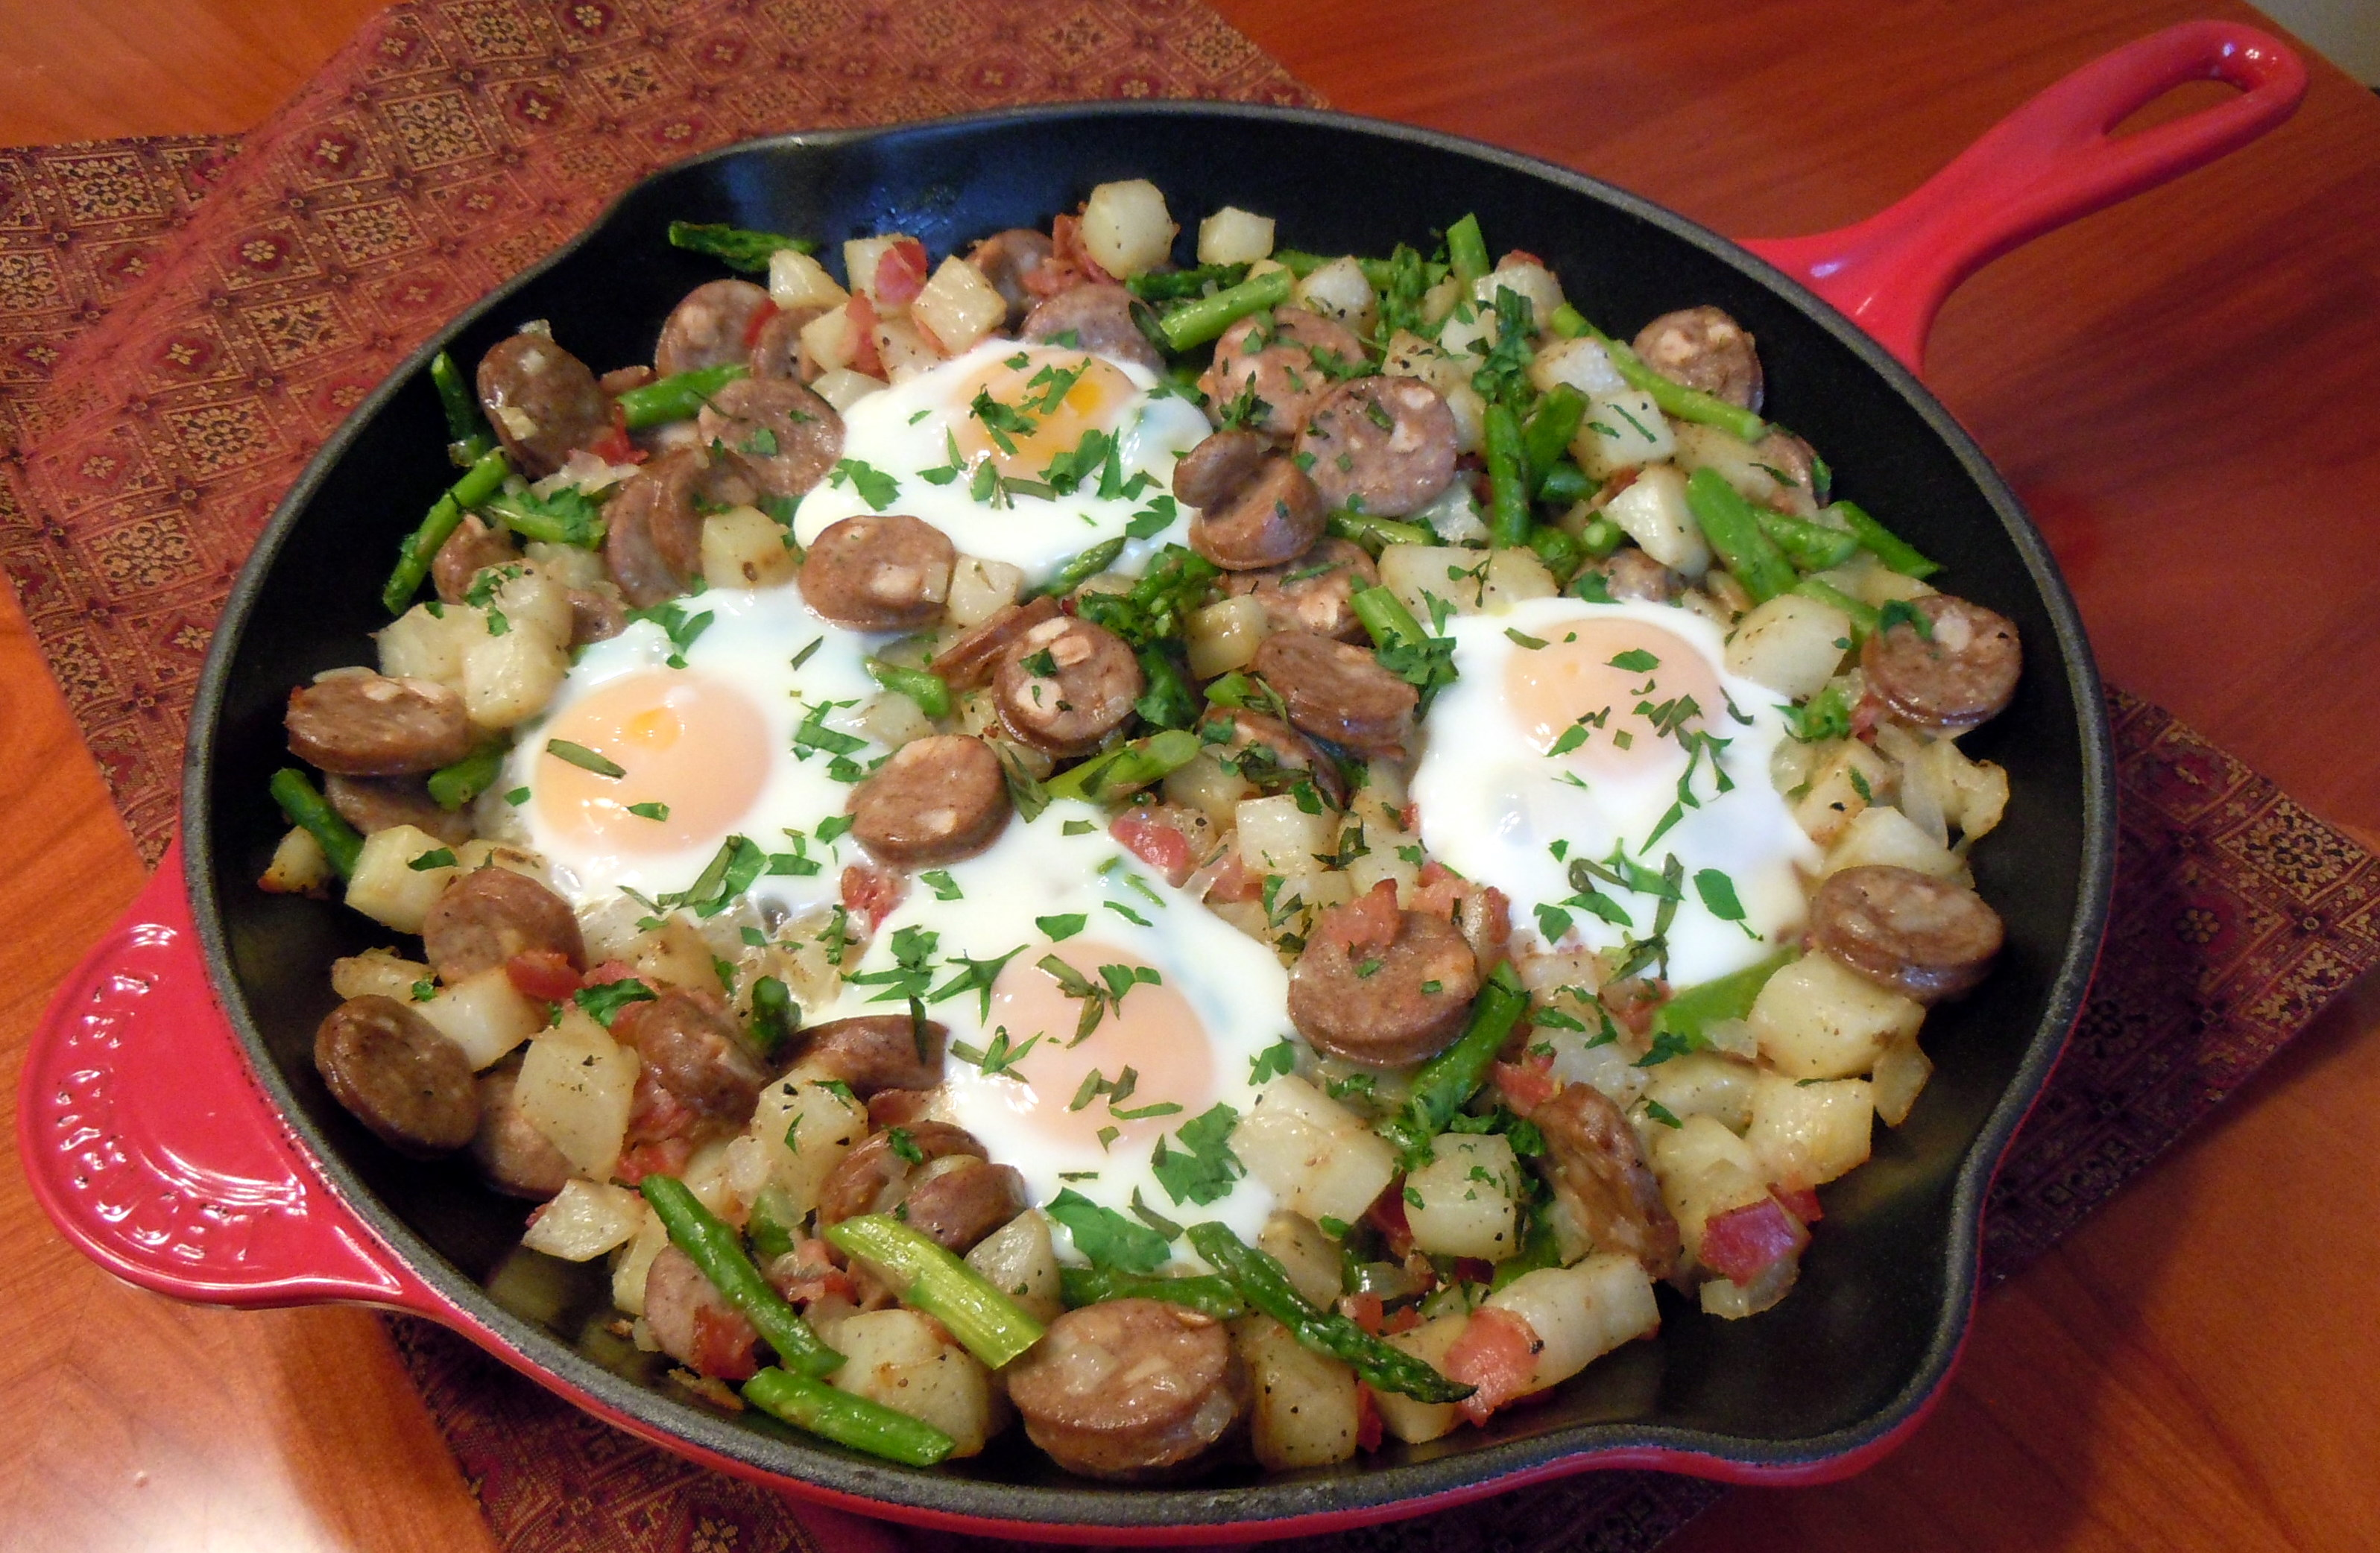 Chicken Apple Sausage Hash with Pancetta, Asparagus and Baked Eggs